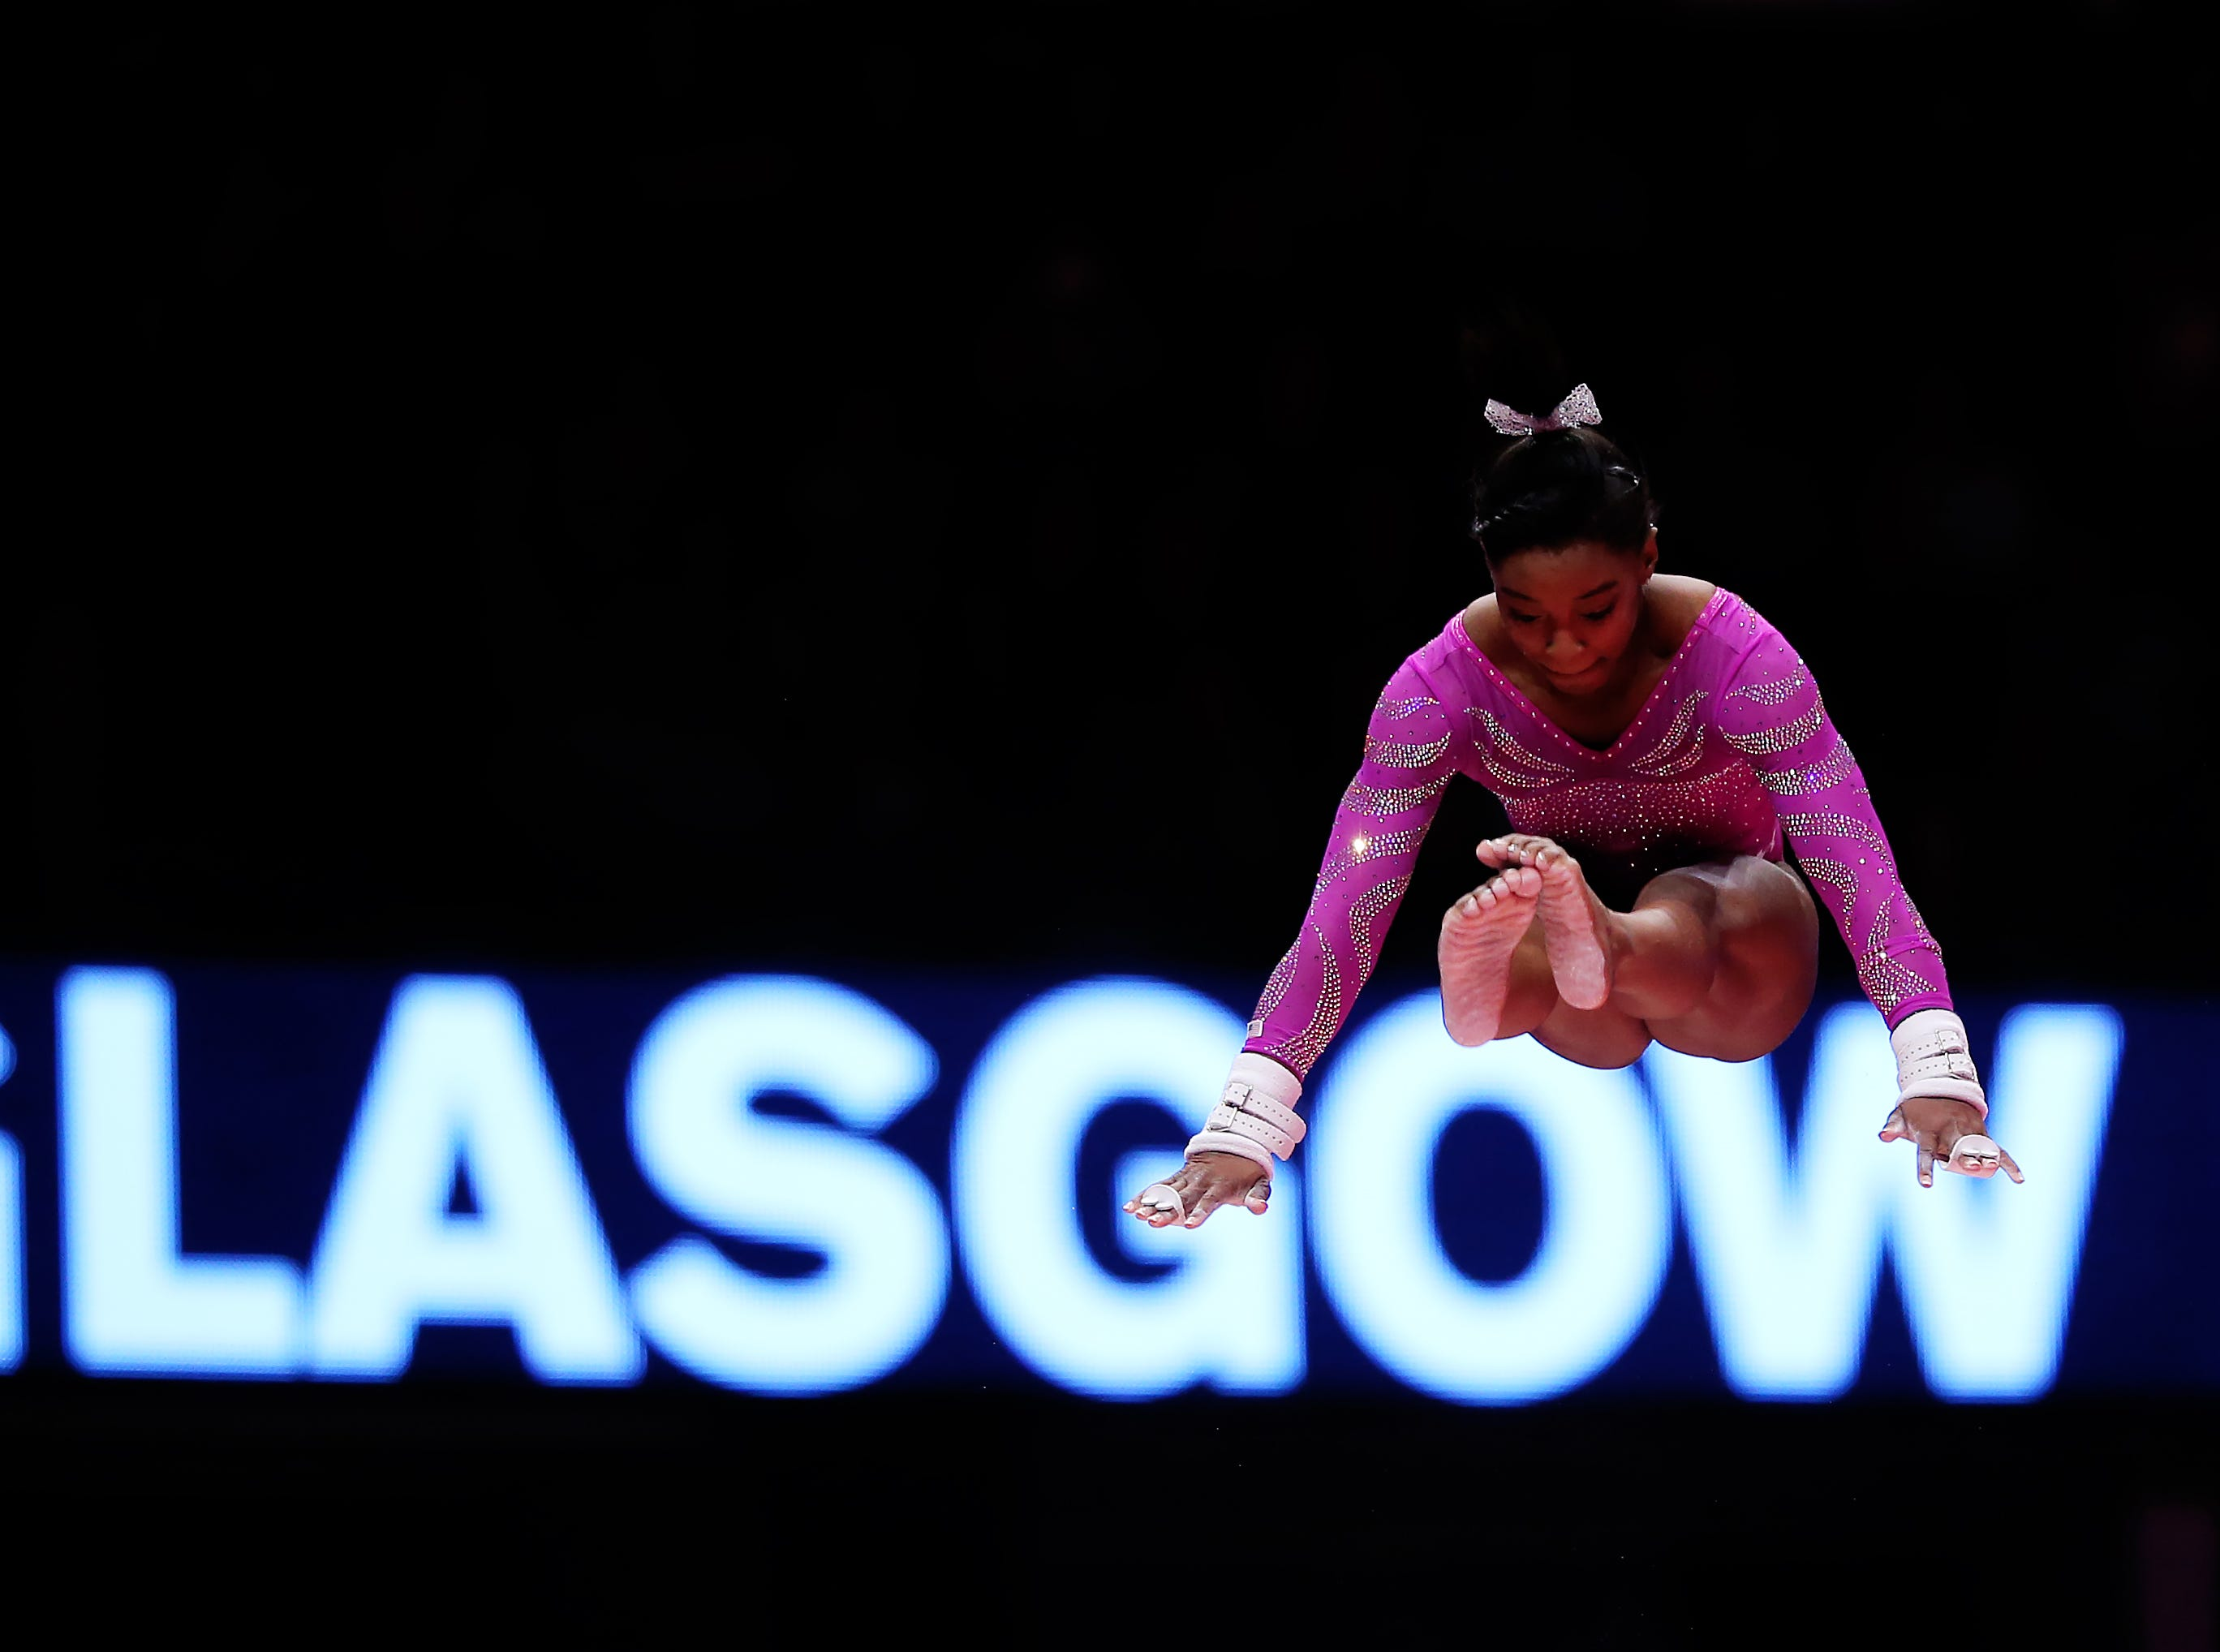 In 2015, Simone Biles competes on the uneven bars during world championships at The SSE Hydro in Glasgow, Scotland.